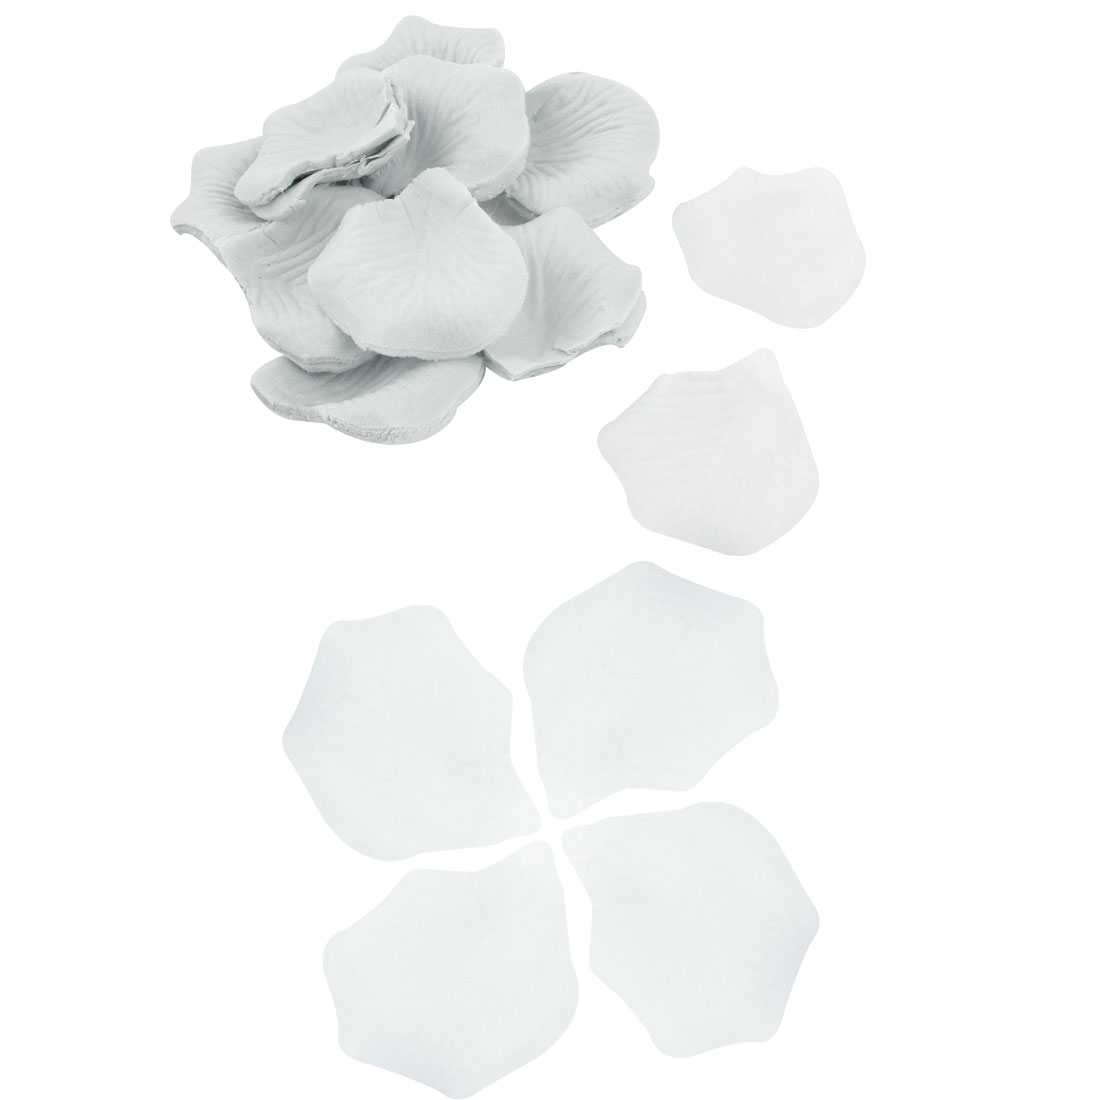 200 Pcs Wedding Festival House Accent Artificial Fabric Rose Petals White